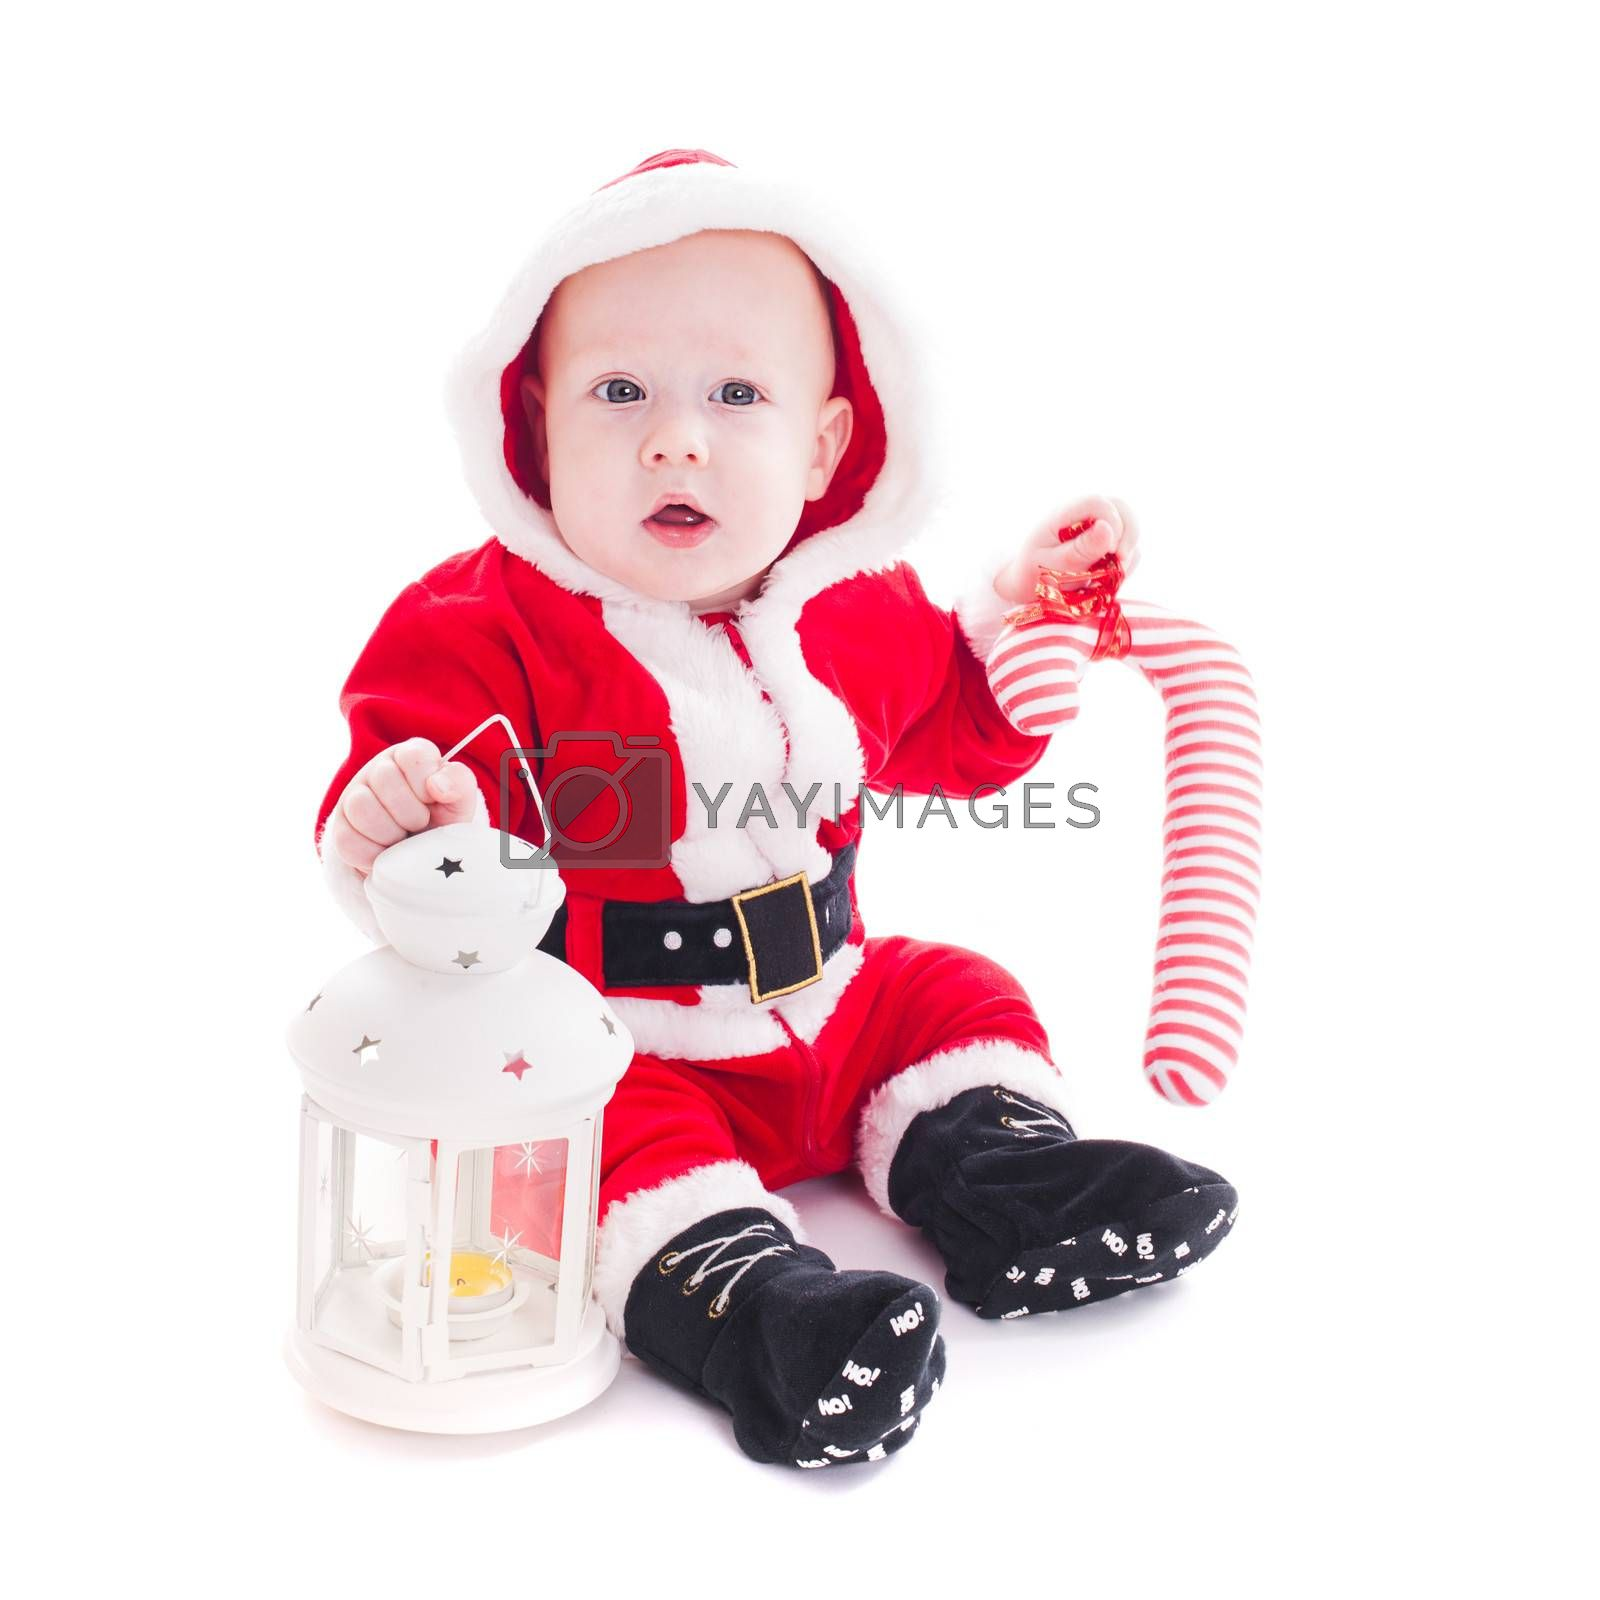 Little Santa boy with lantern and staff isolated on white background